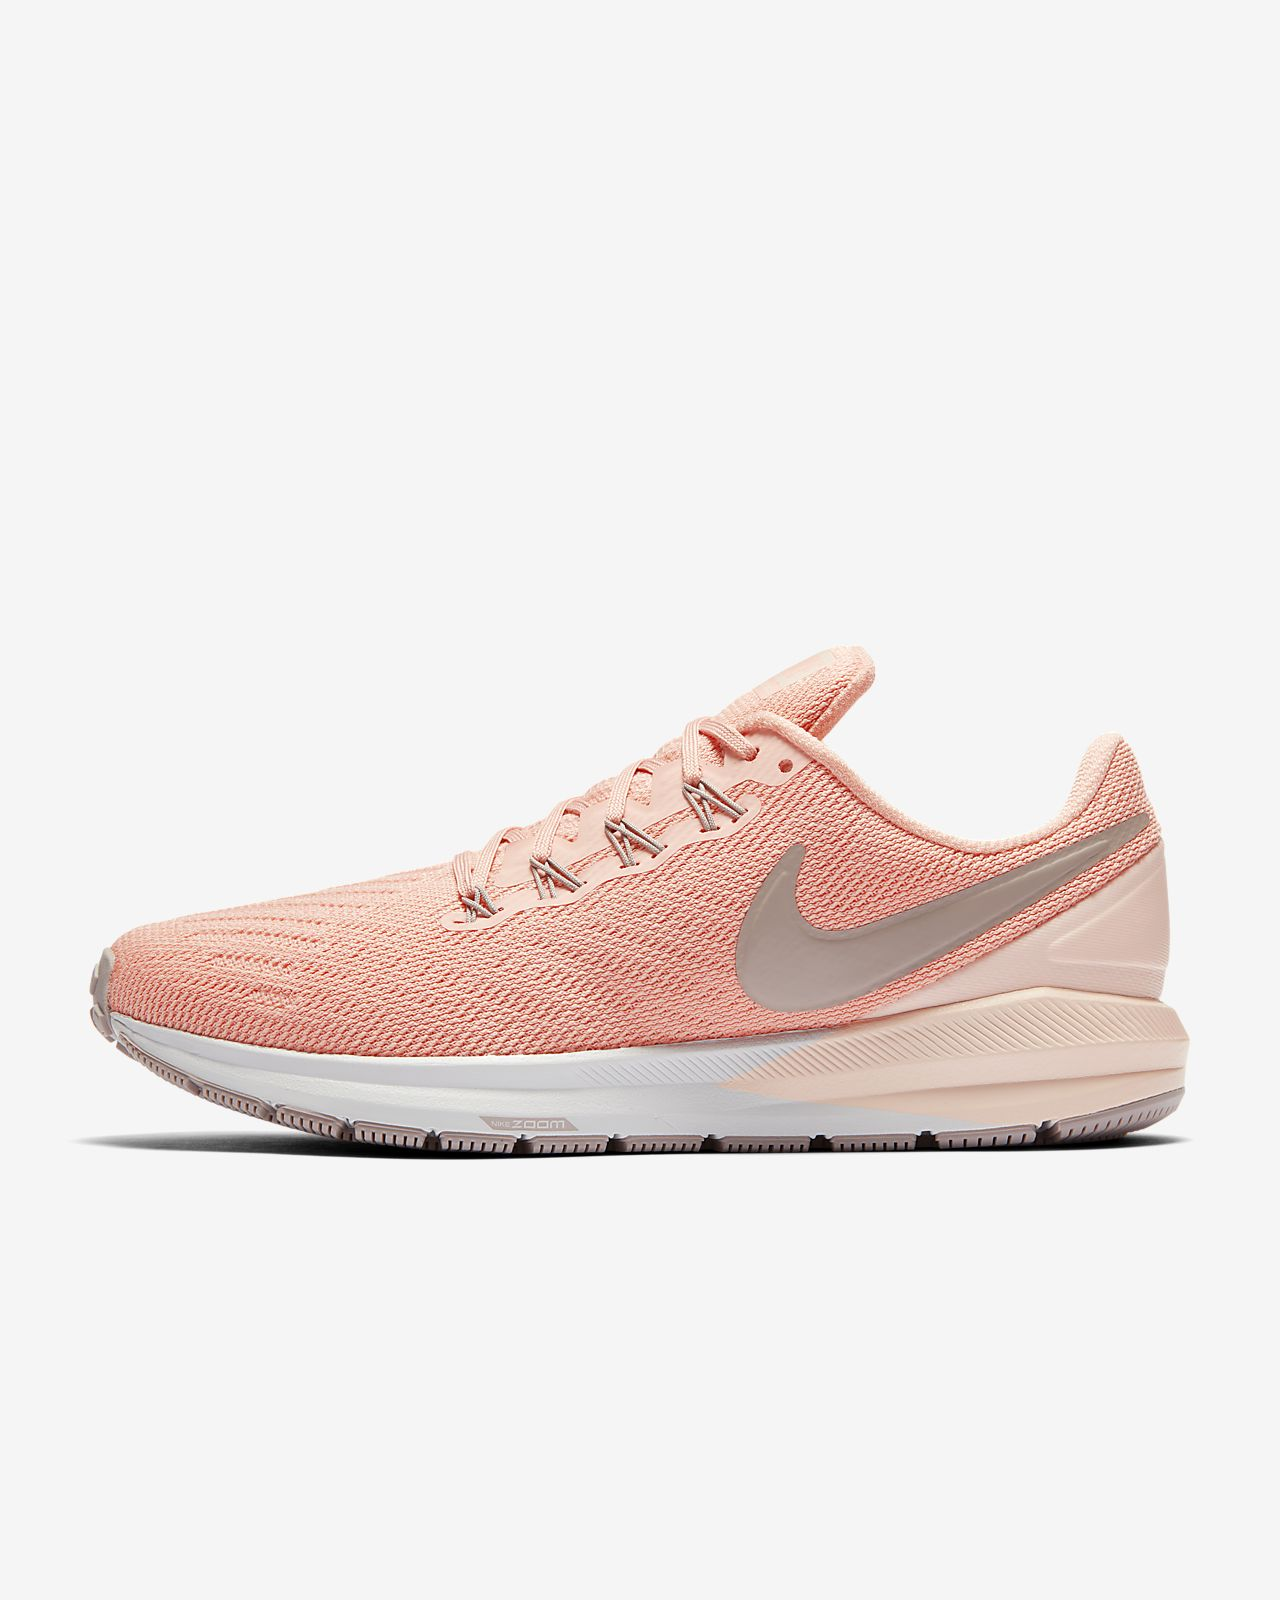 Nike Women's Air Zoom Structure 22 Running Shoe